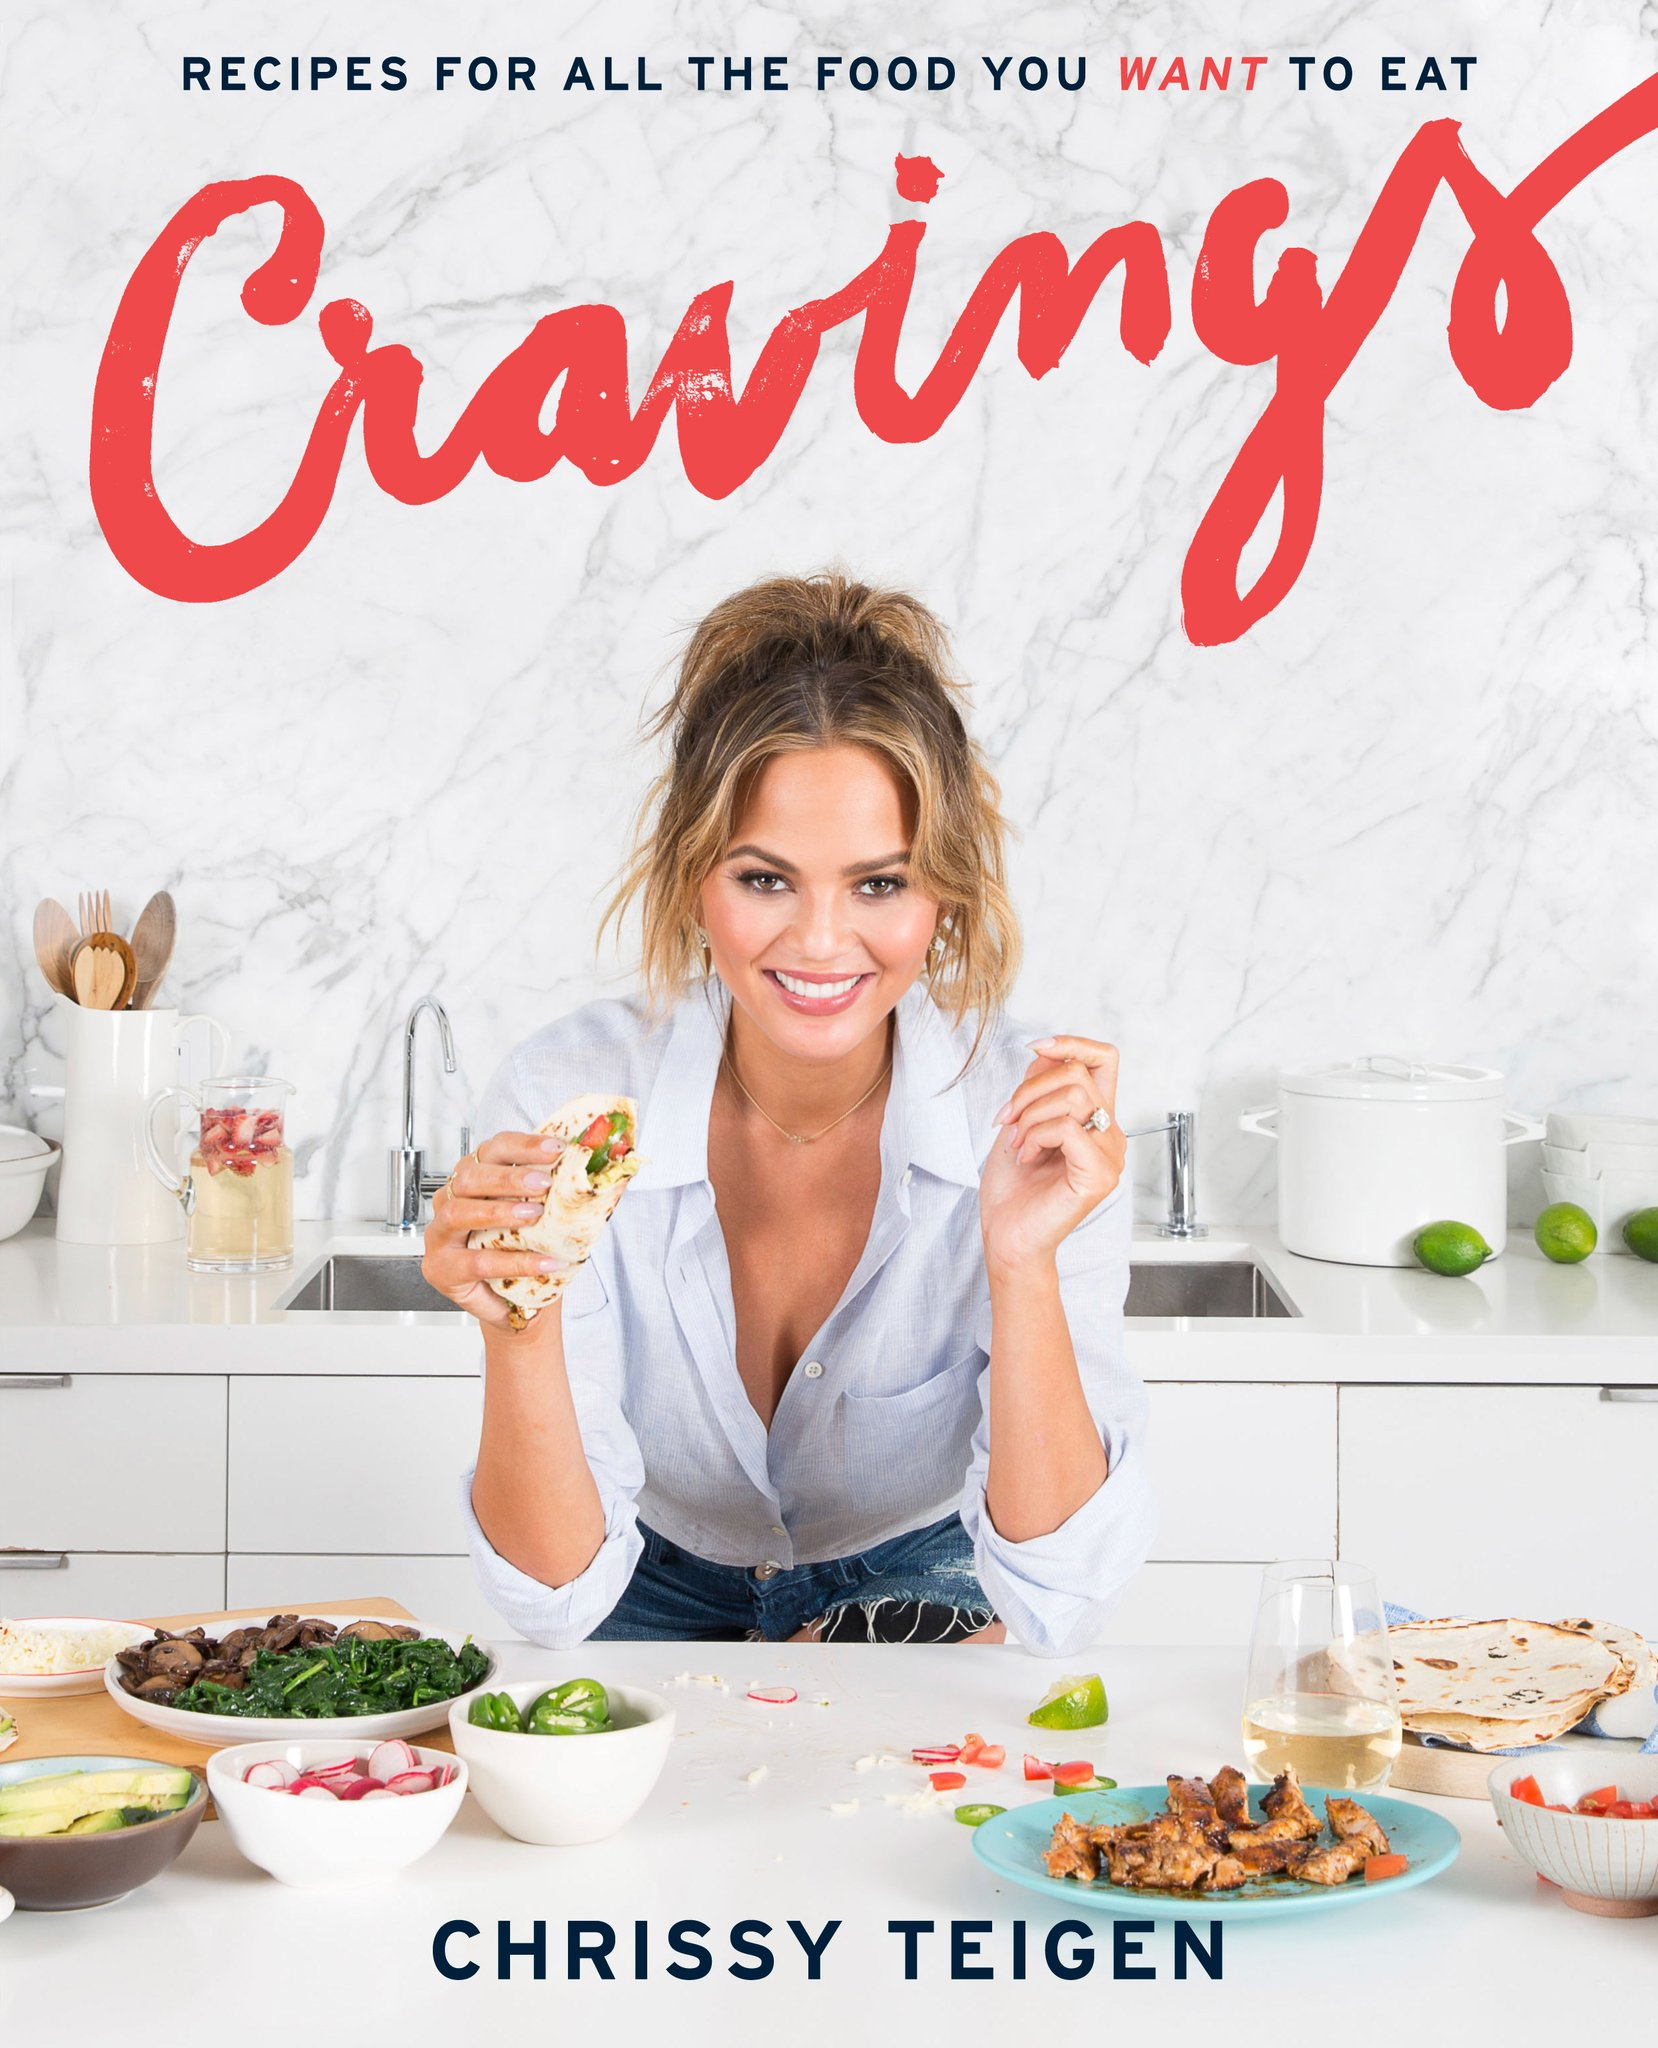 Healthy food porn cookbook